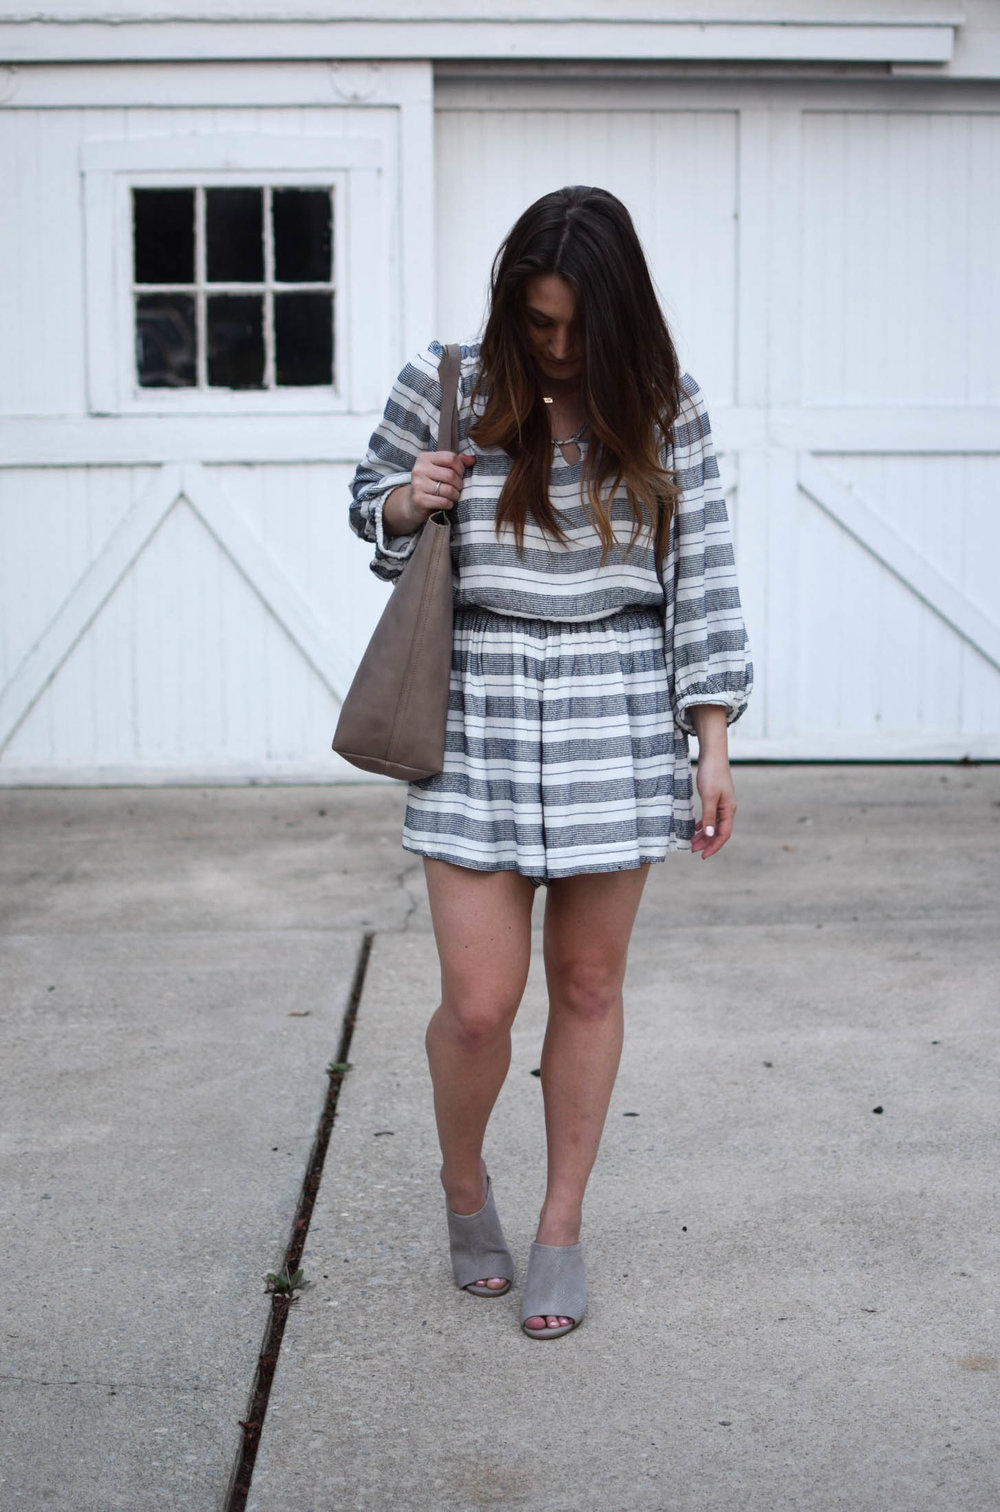 Anthropologie striped romper / madewell tote / summer outfit idea